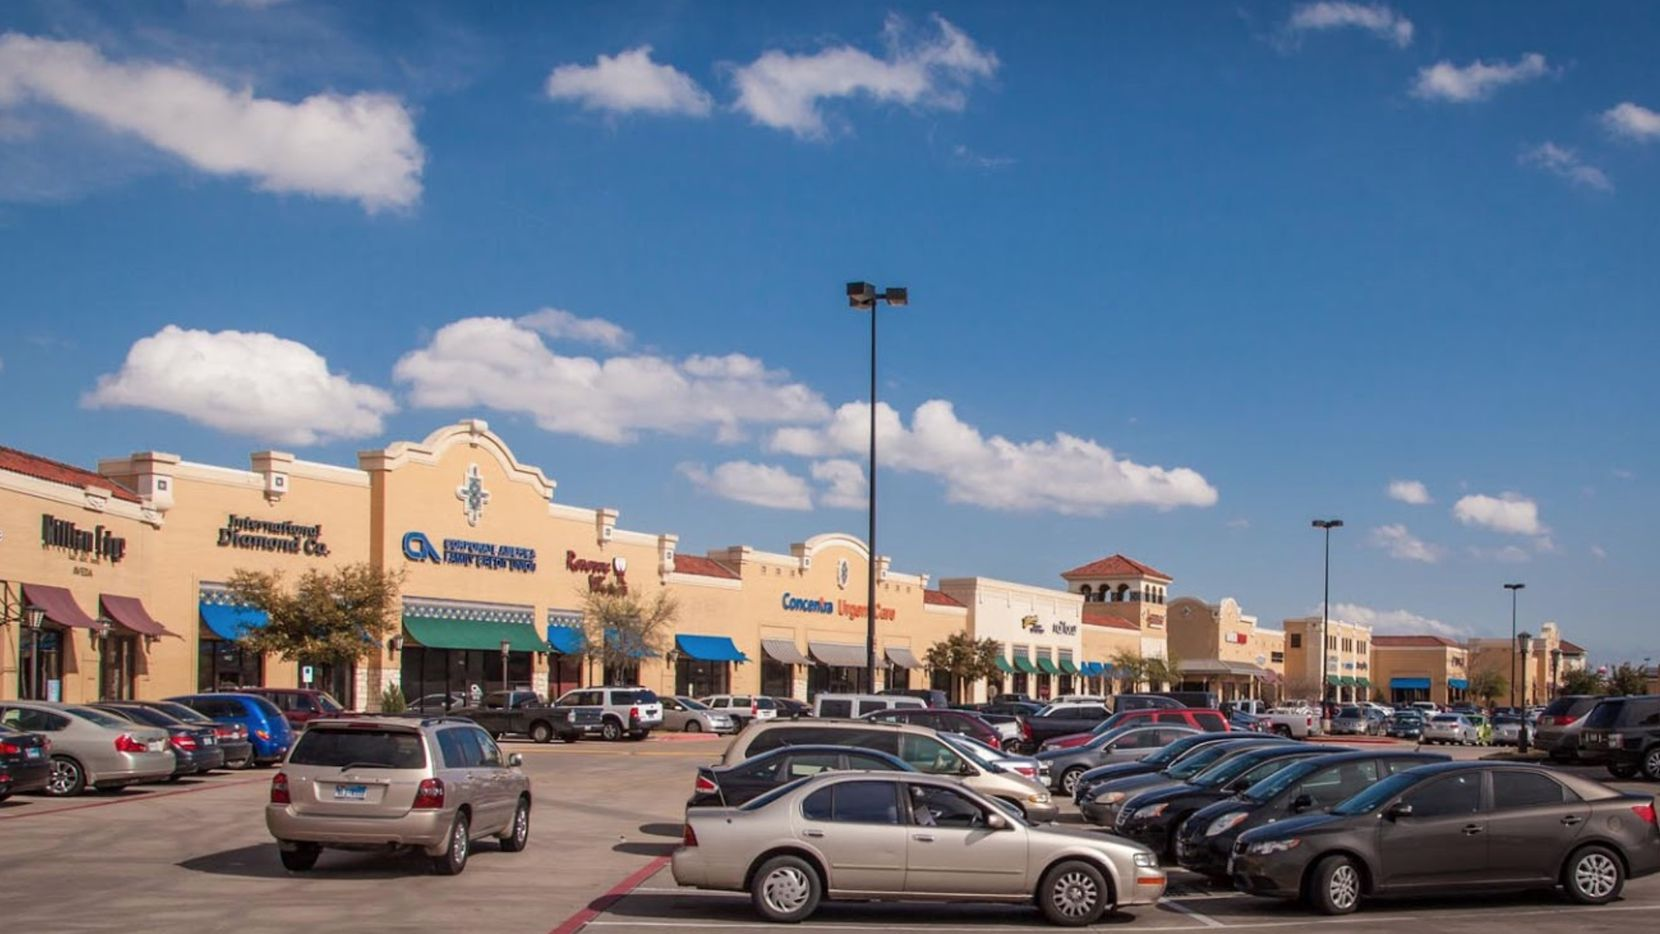 Las Colinas Village was purchased by Whitestone REIT.